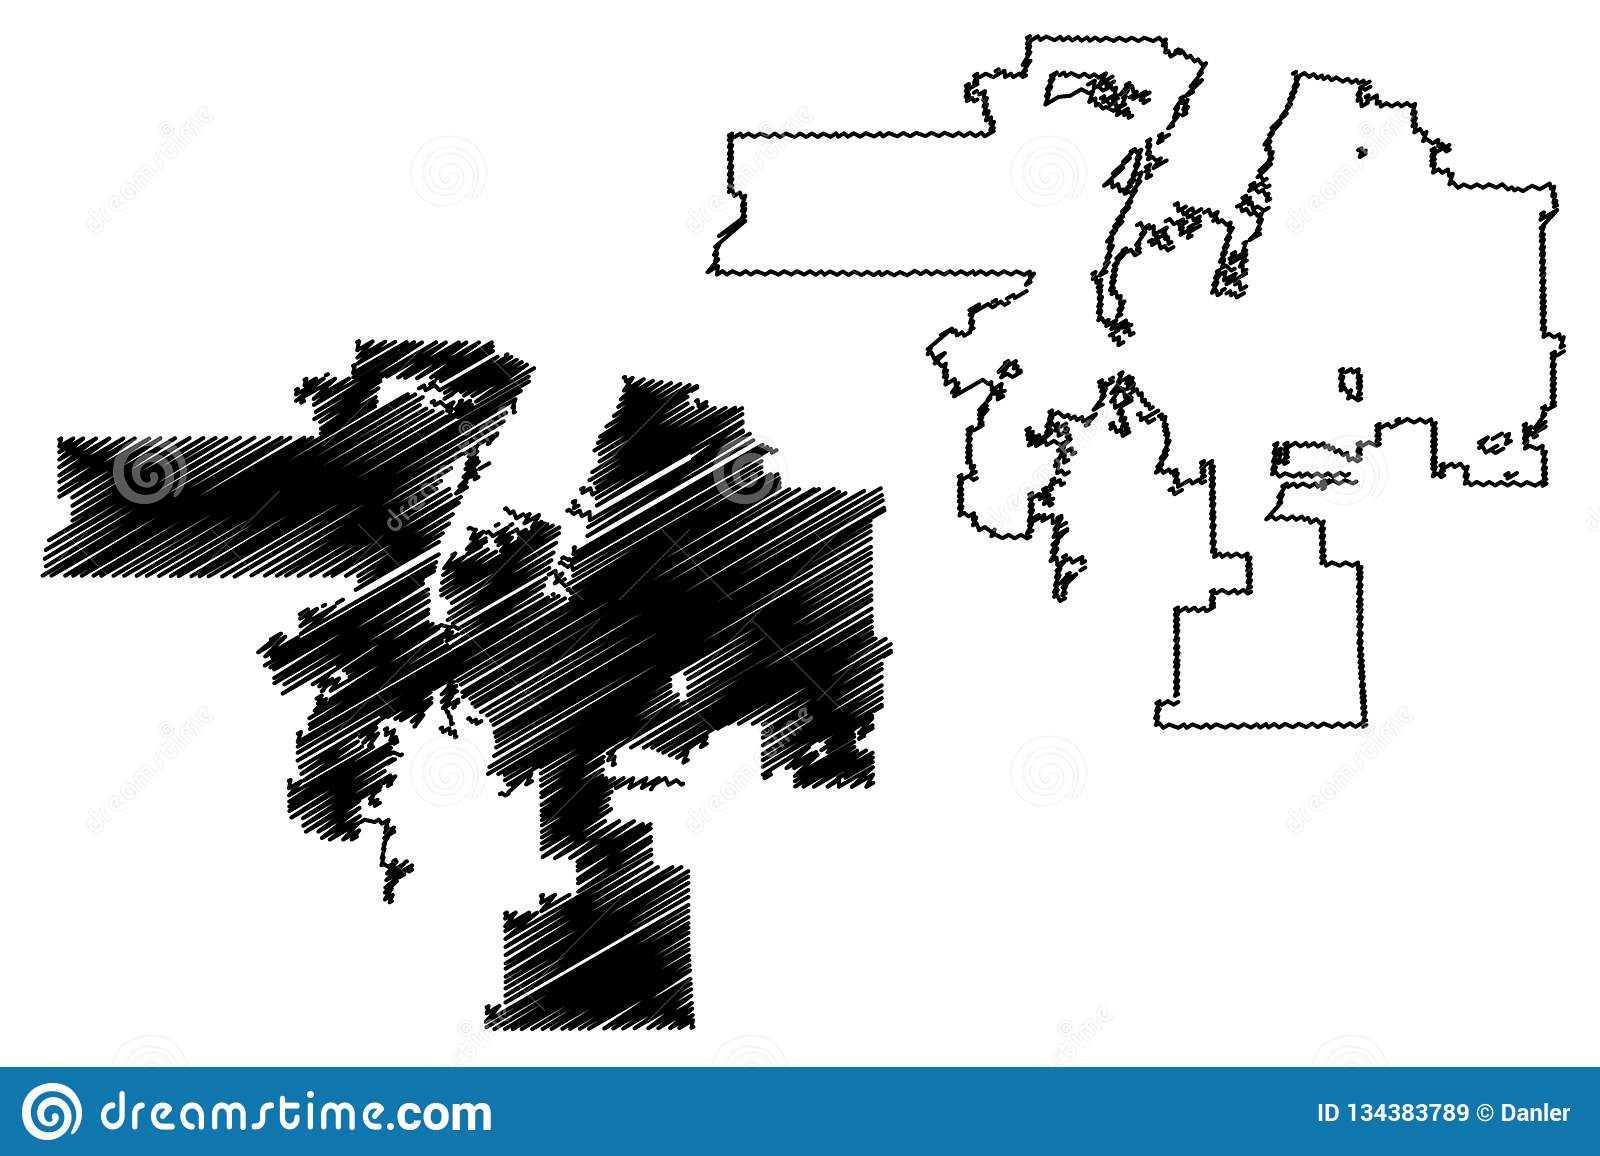 Albuquerque City Map Vector Stock Vector - Illustration of continent on